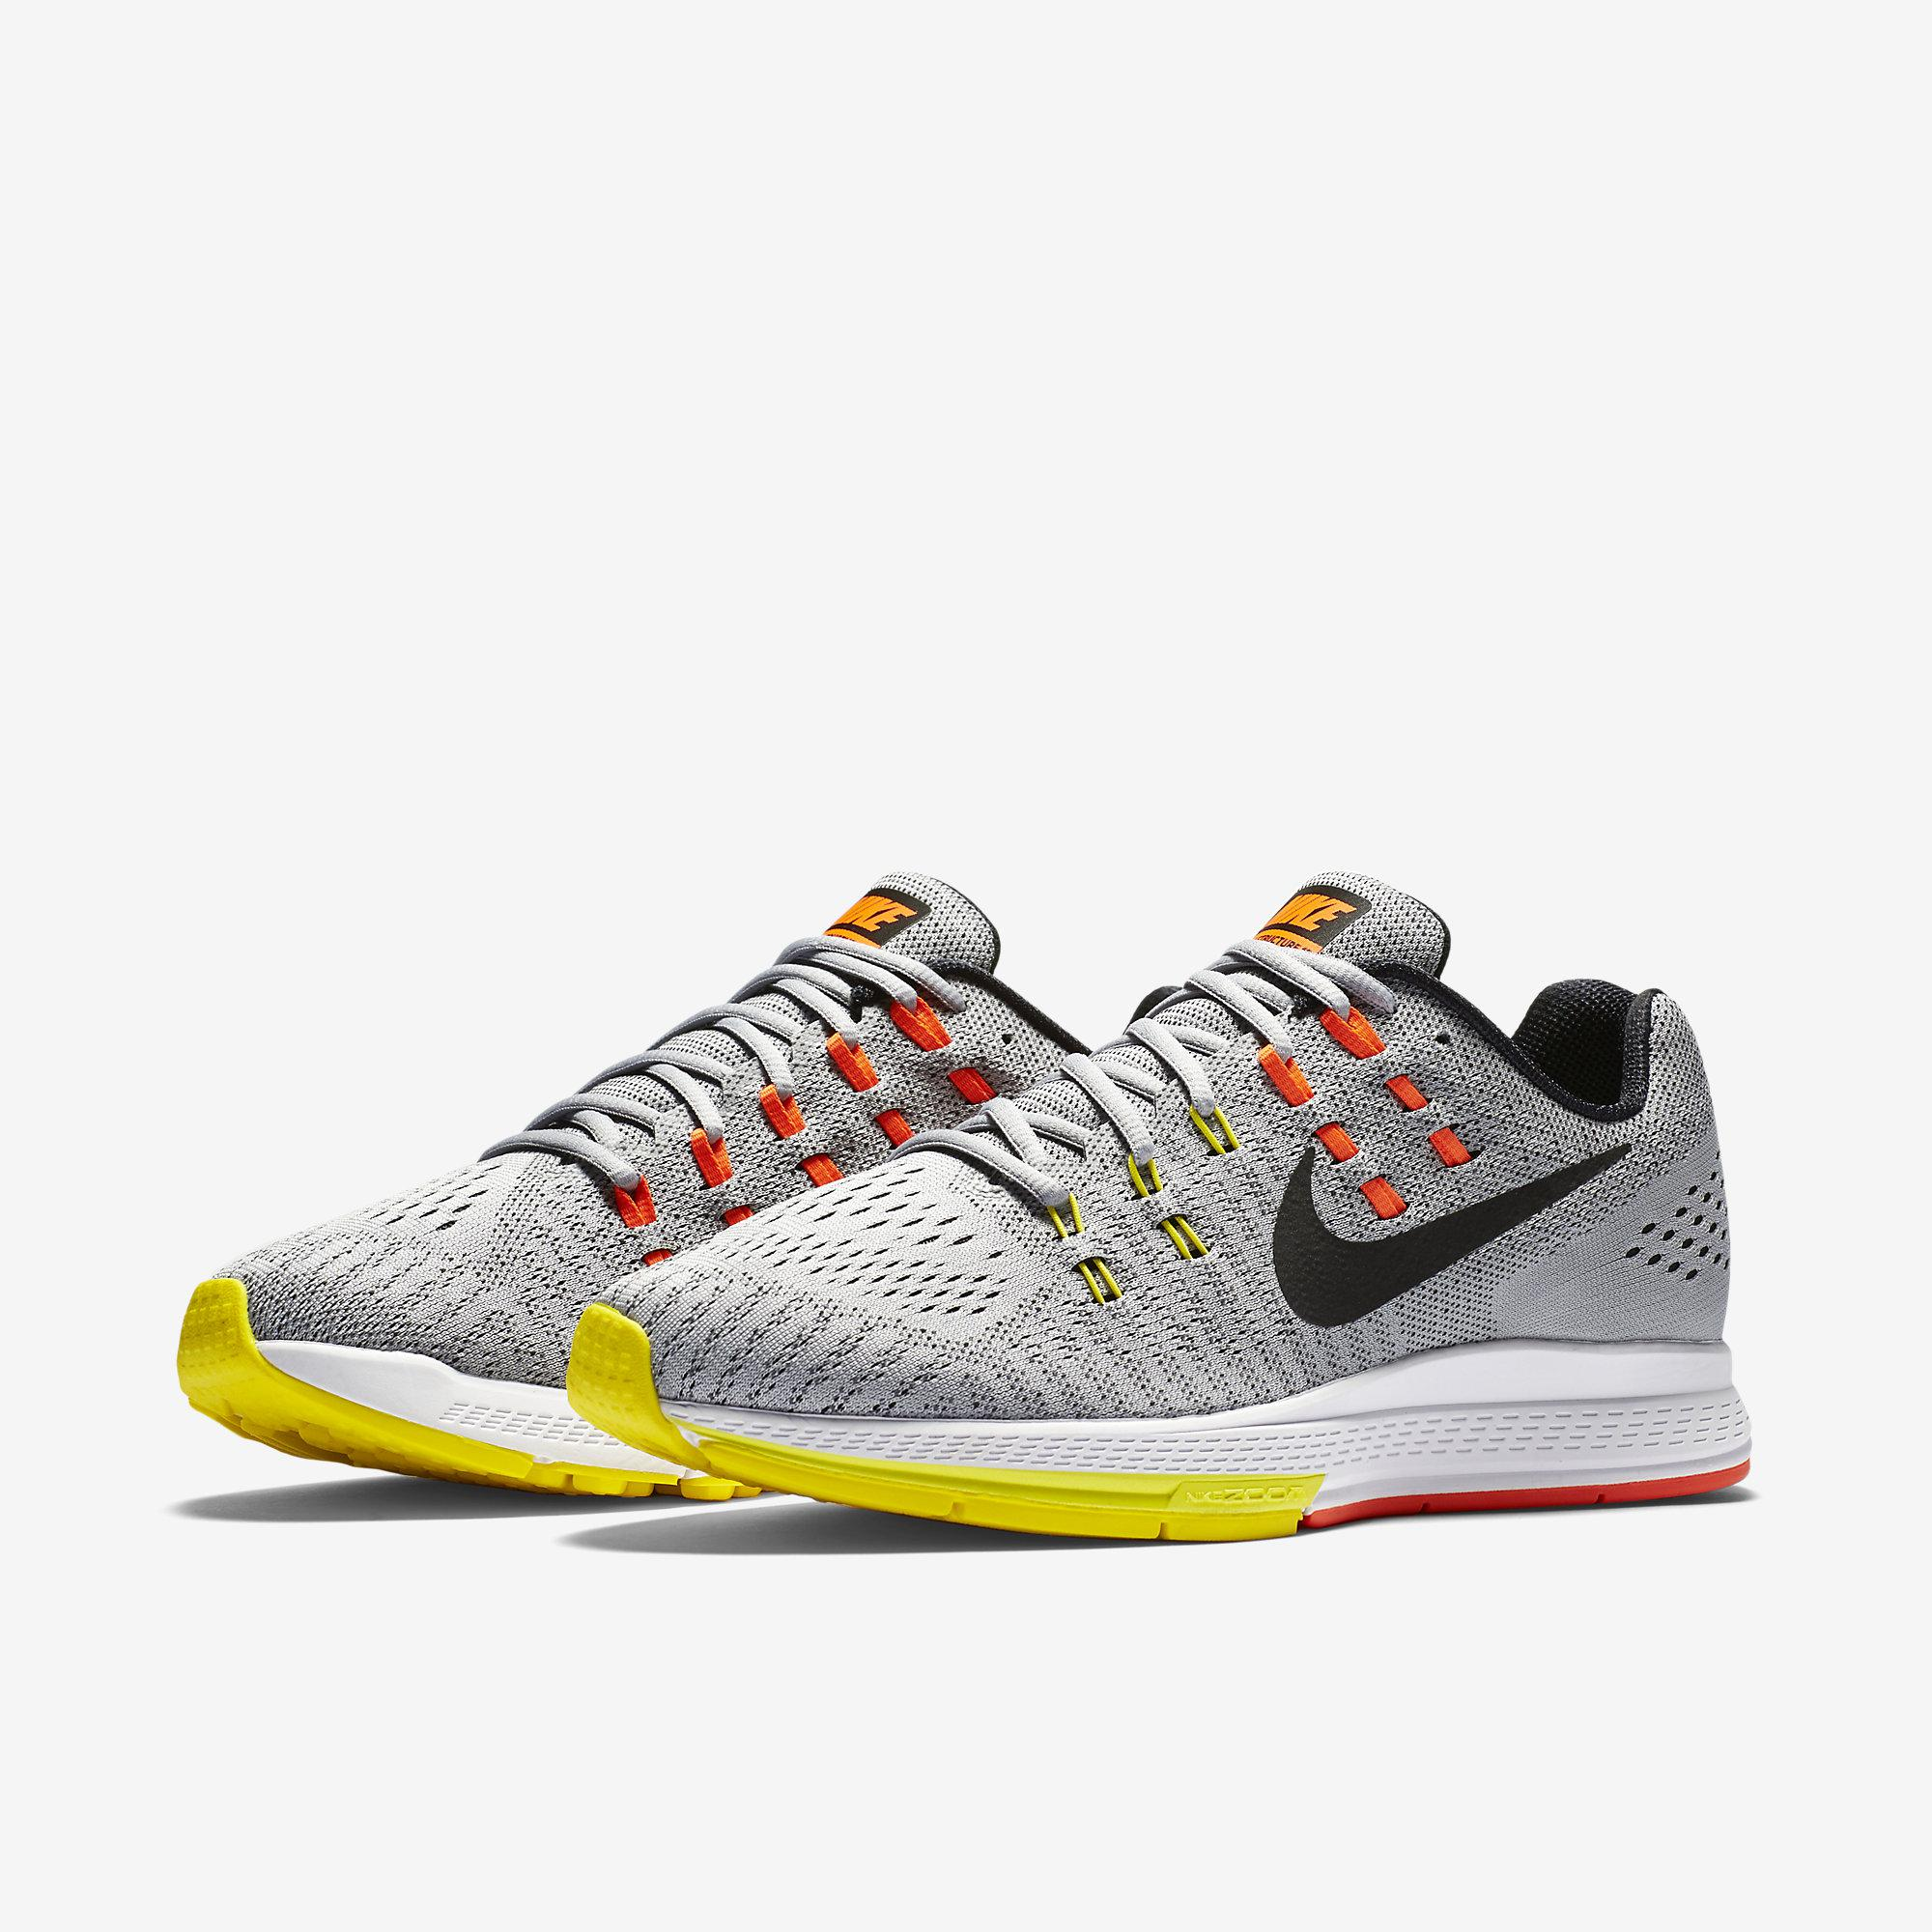 the latest 5682e fe9d0 Nike Mens Air Zoom Structure 19 Running Shoes - Grey Yellow